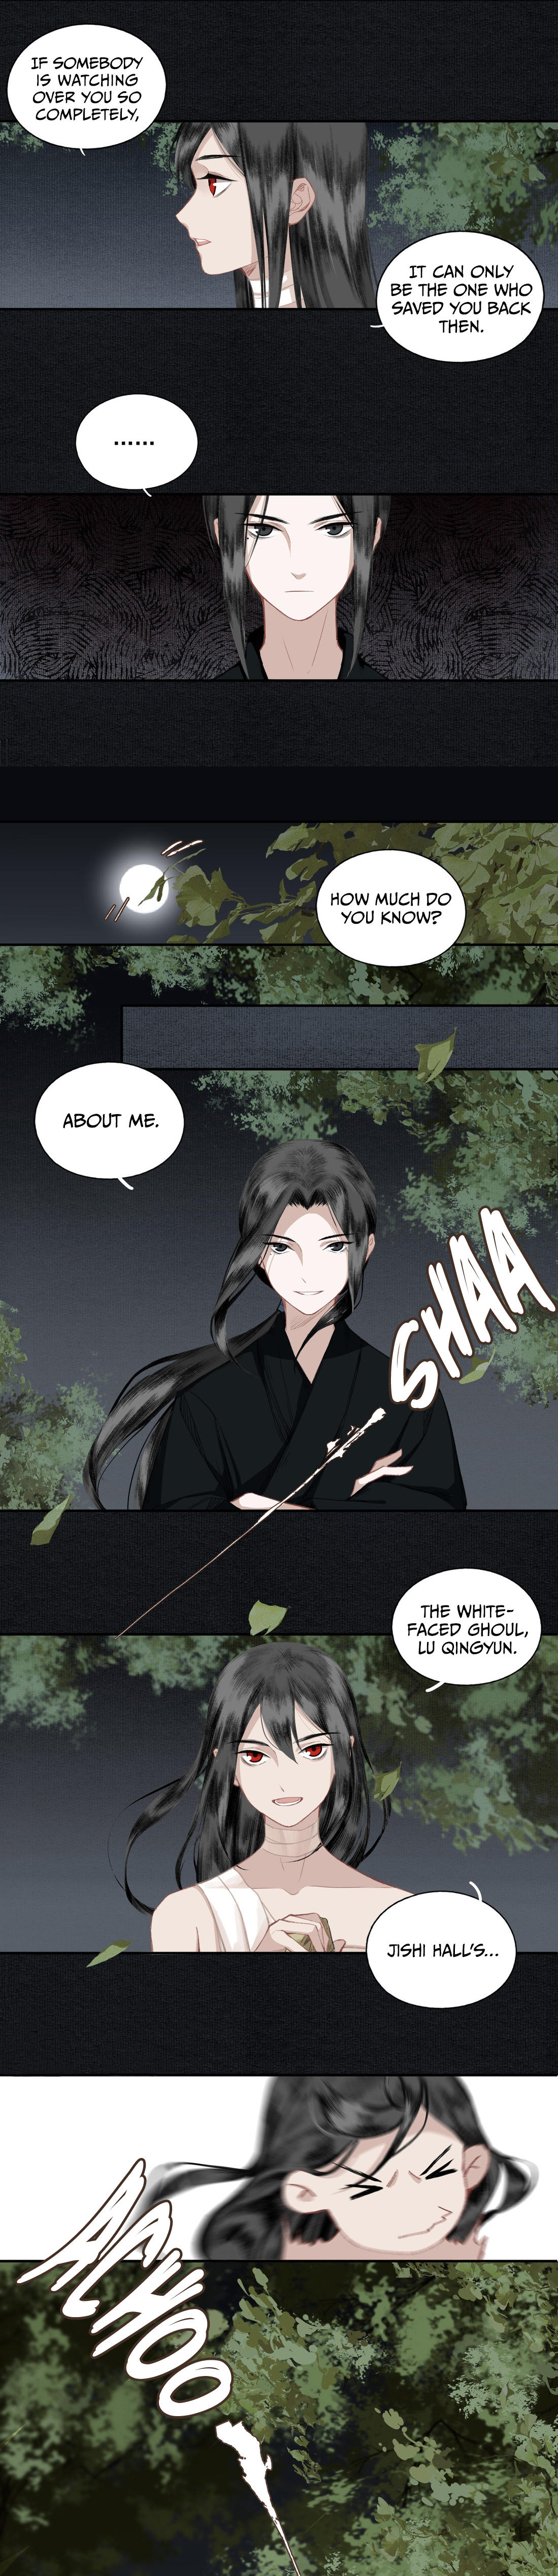 I Accidentally Saved The Jianghu'S Enemy Chapter 14: The White-Faced Ghoul page 4 - Mangakakalots.com